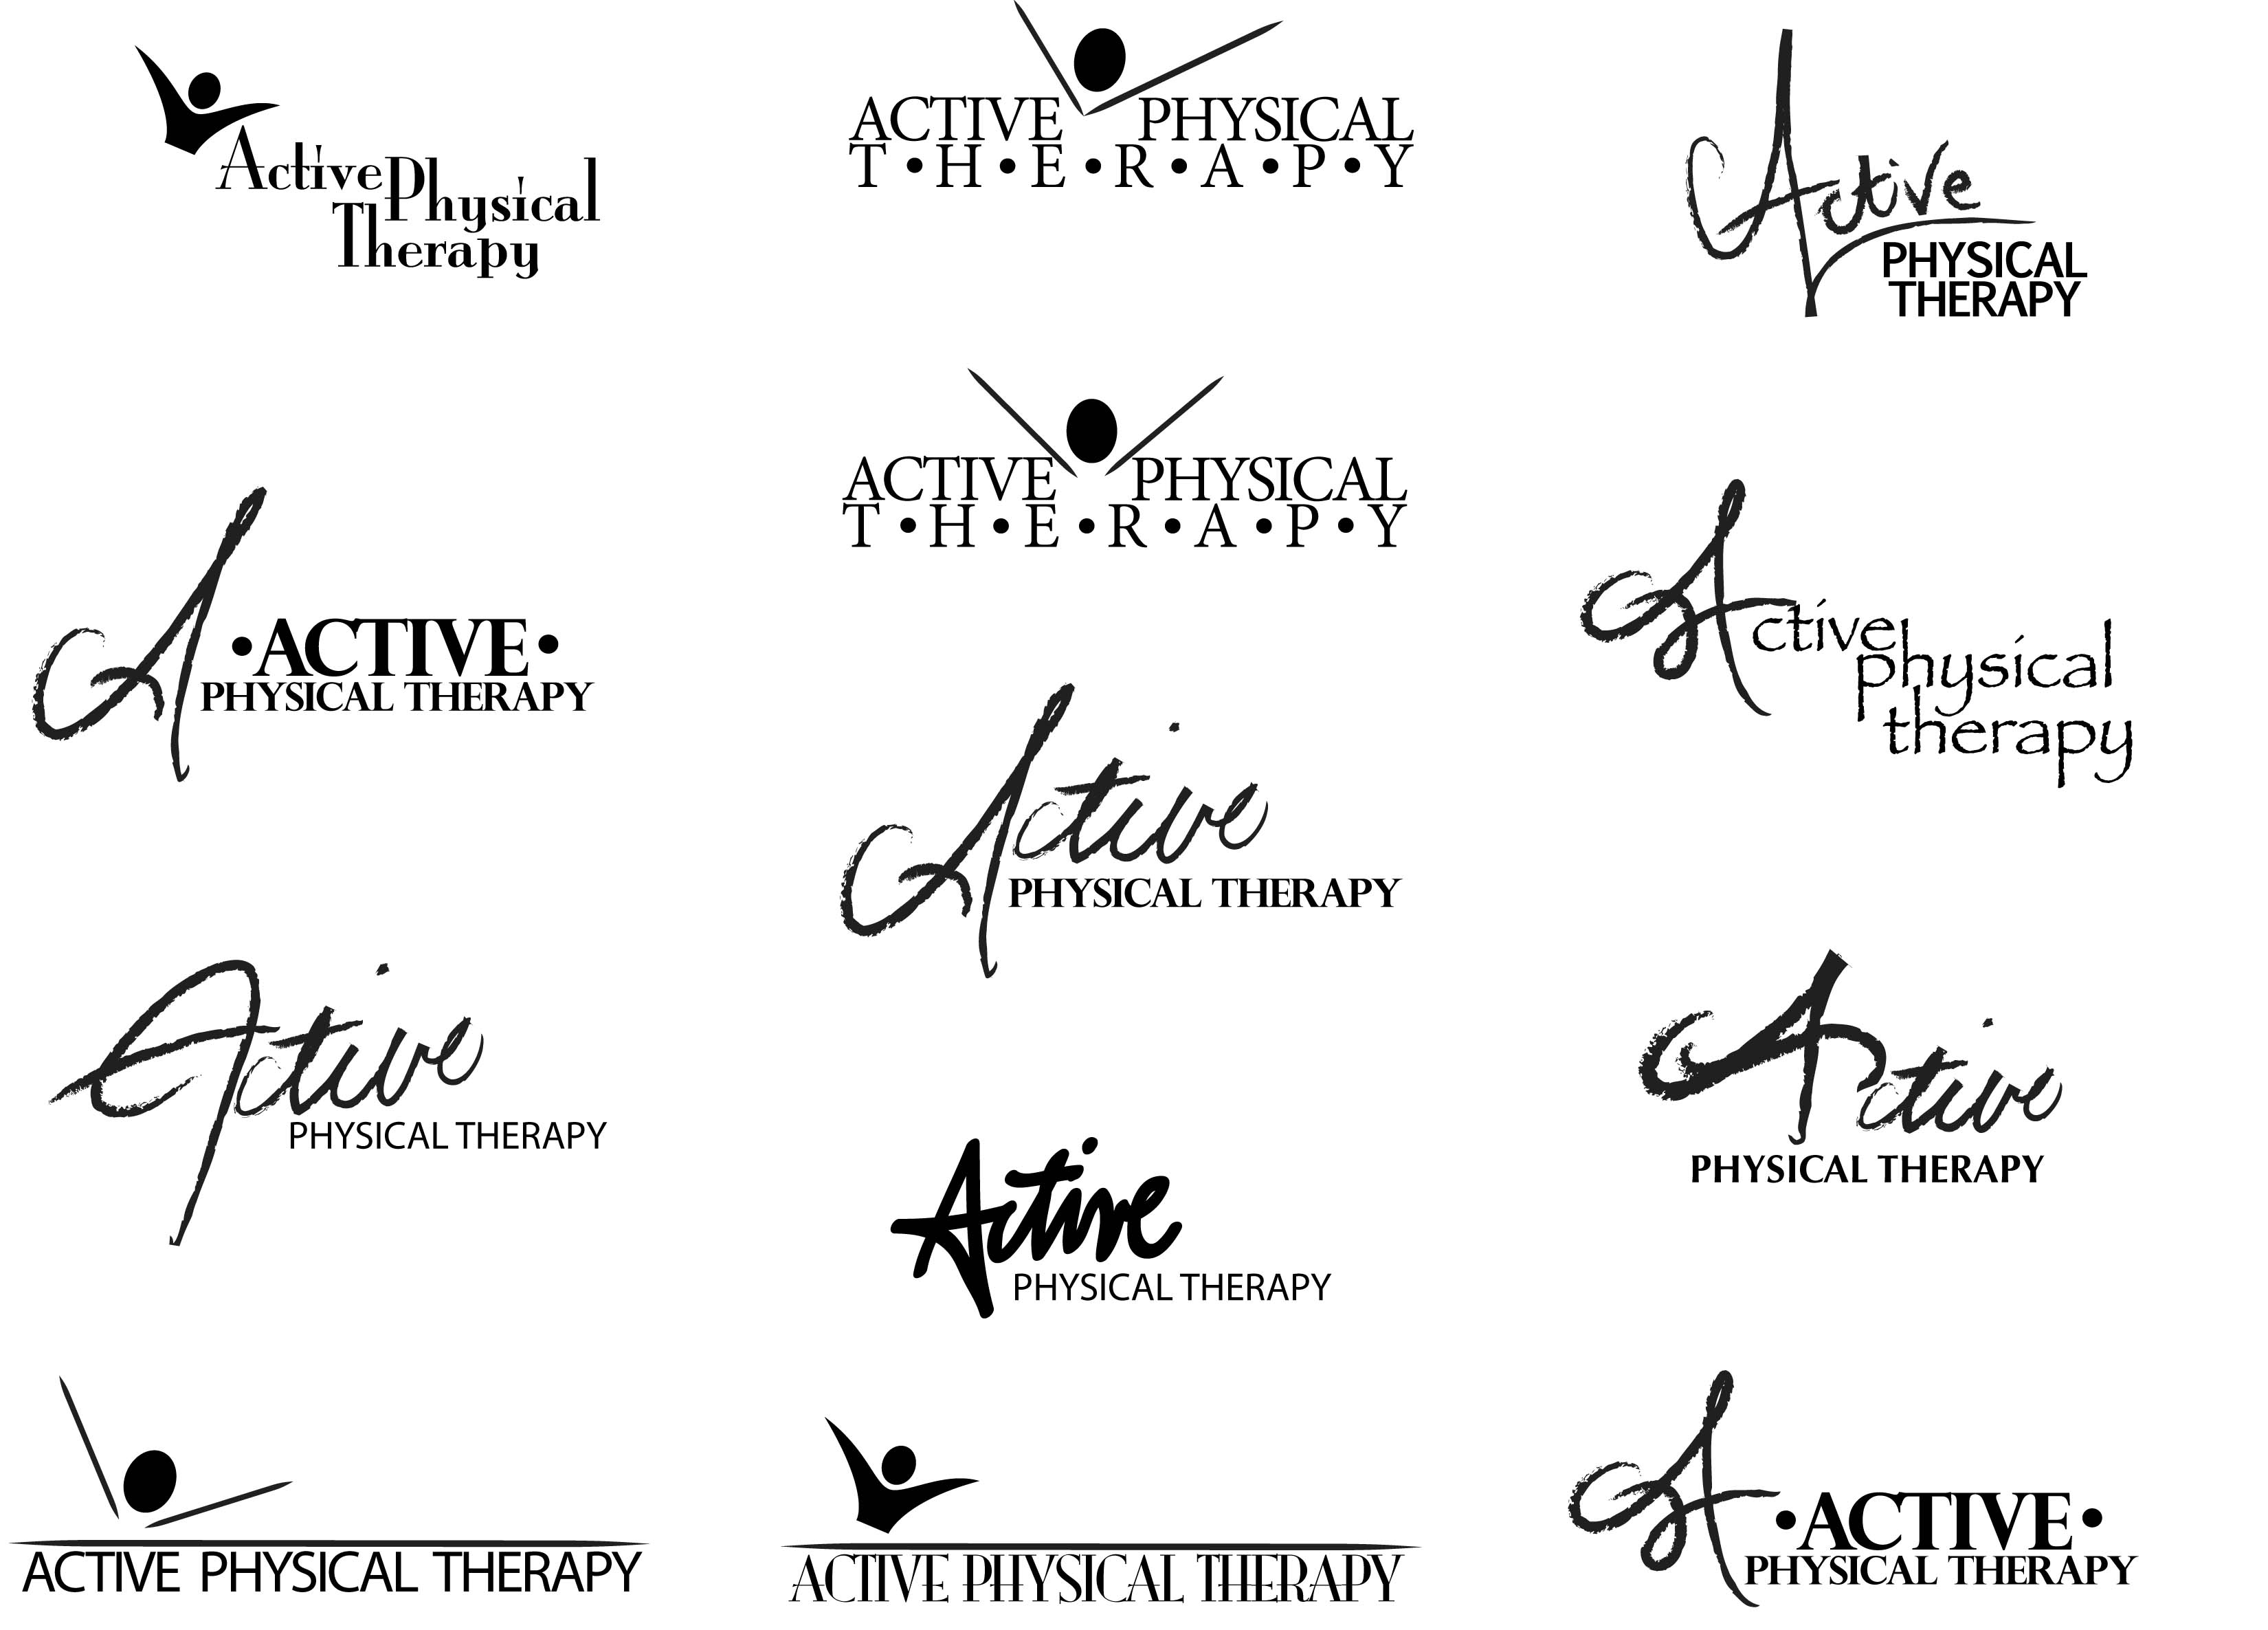 Active Physical Therapy Grace Berry Design